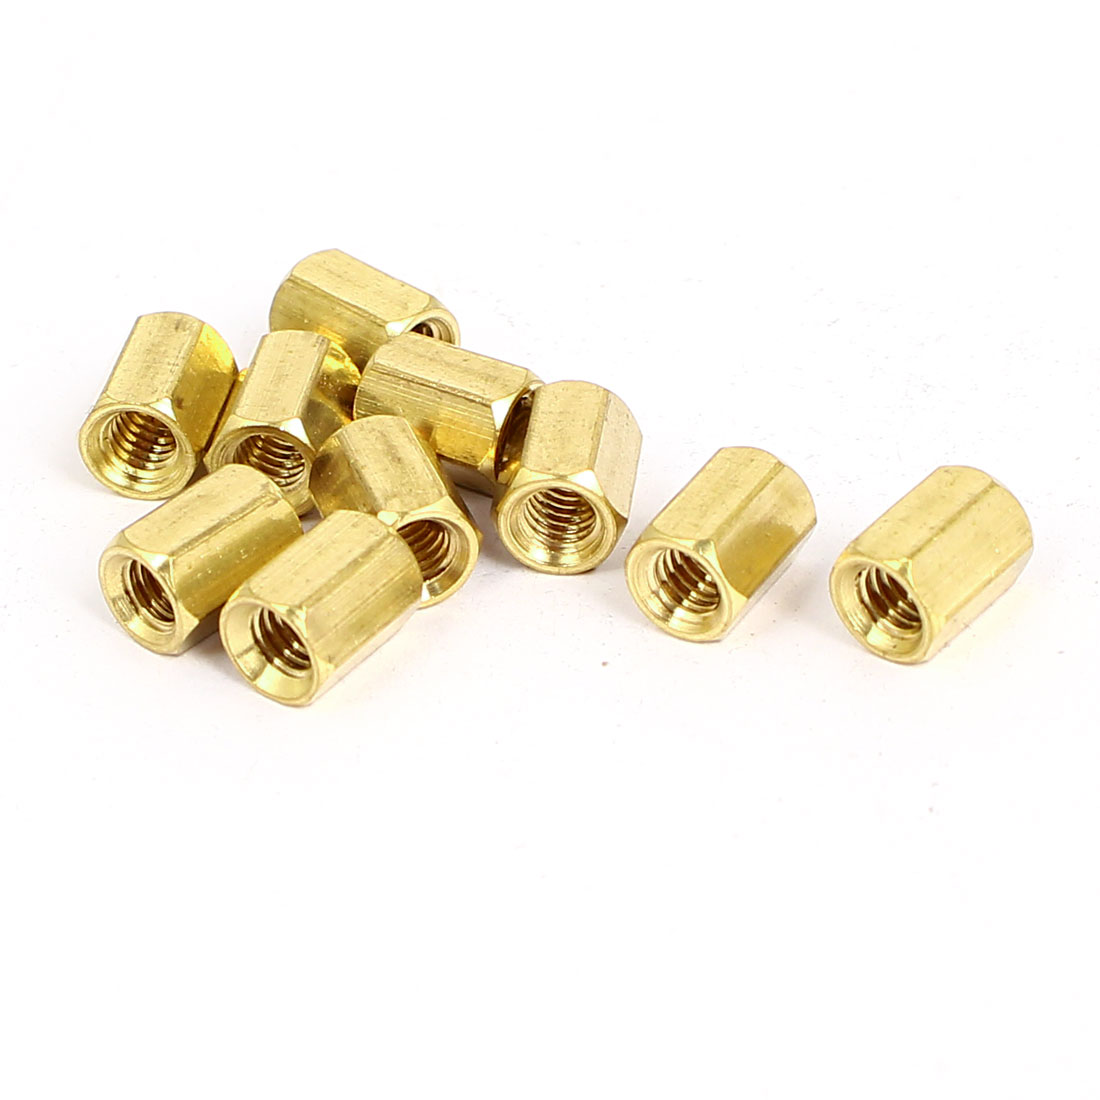 M4x8mm Brass Hex Hexagonal Female Threaded Standoff Spacer Pillars 10pcs